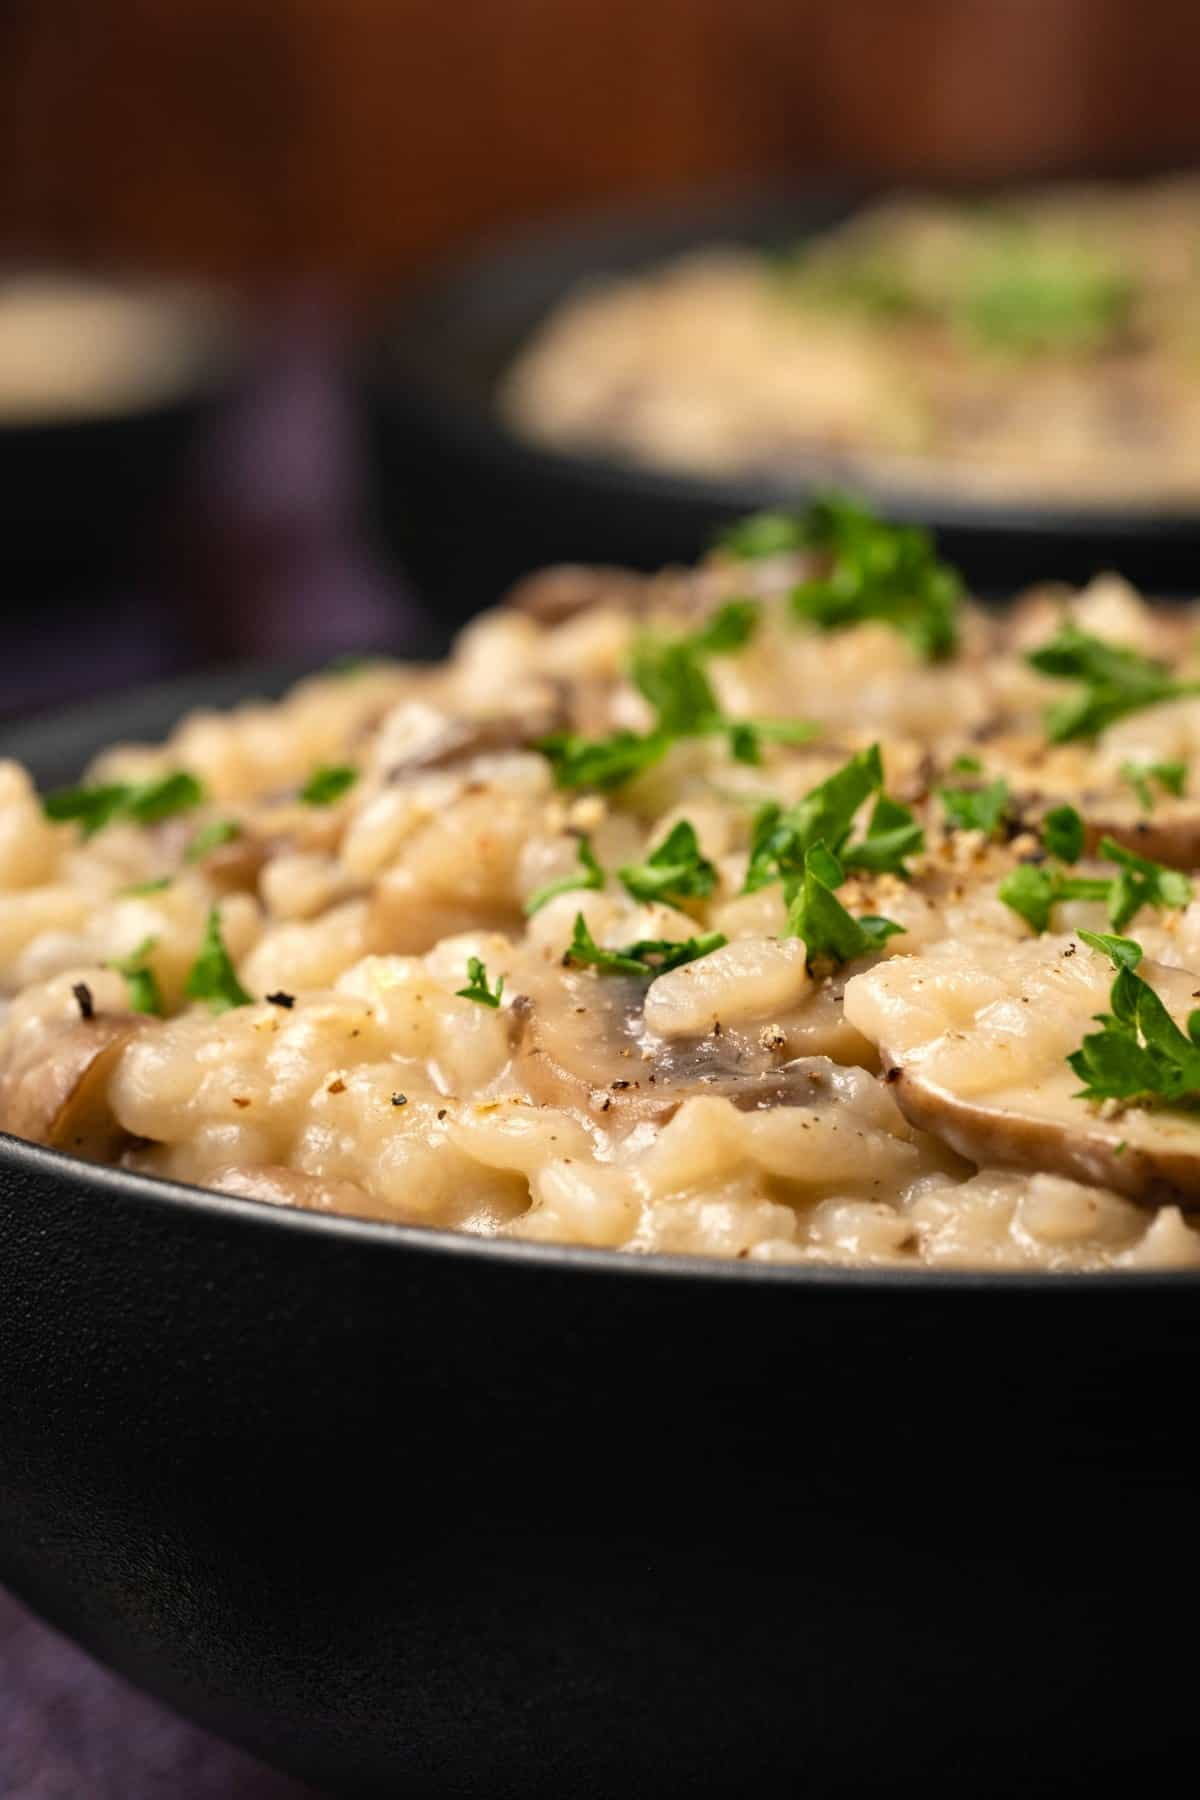 Vegan mushroom risotto in a black bowl with fresh parsley and ground black pepper.